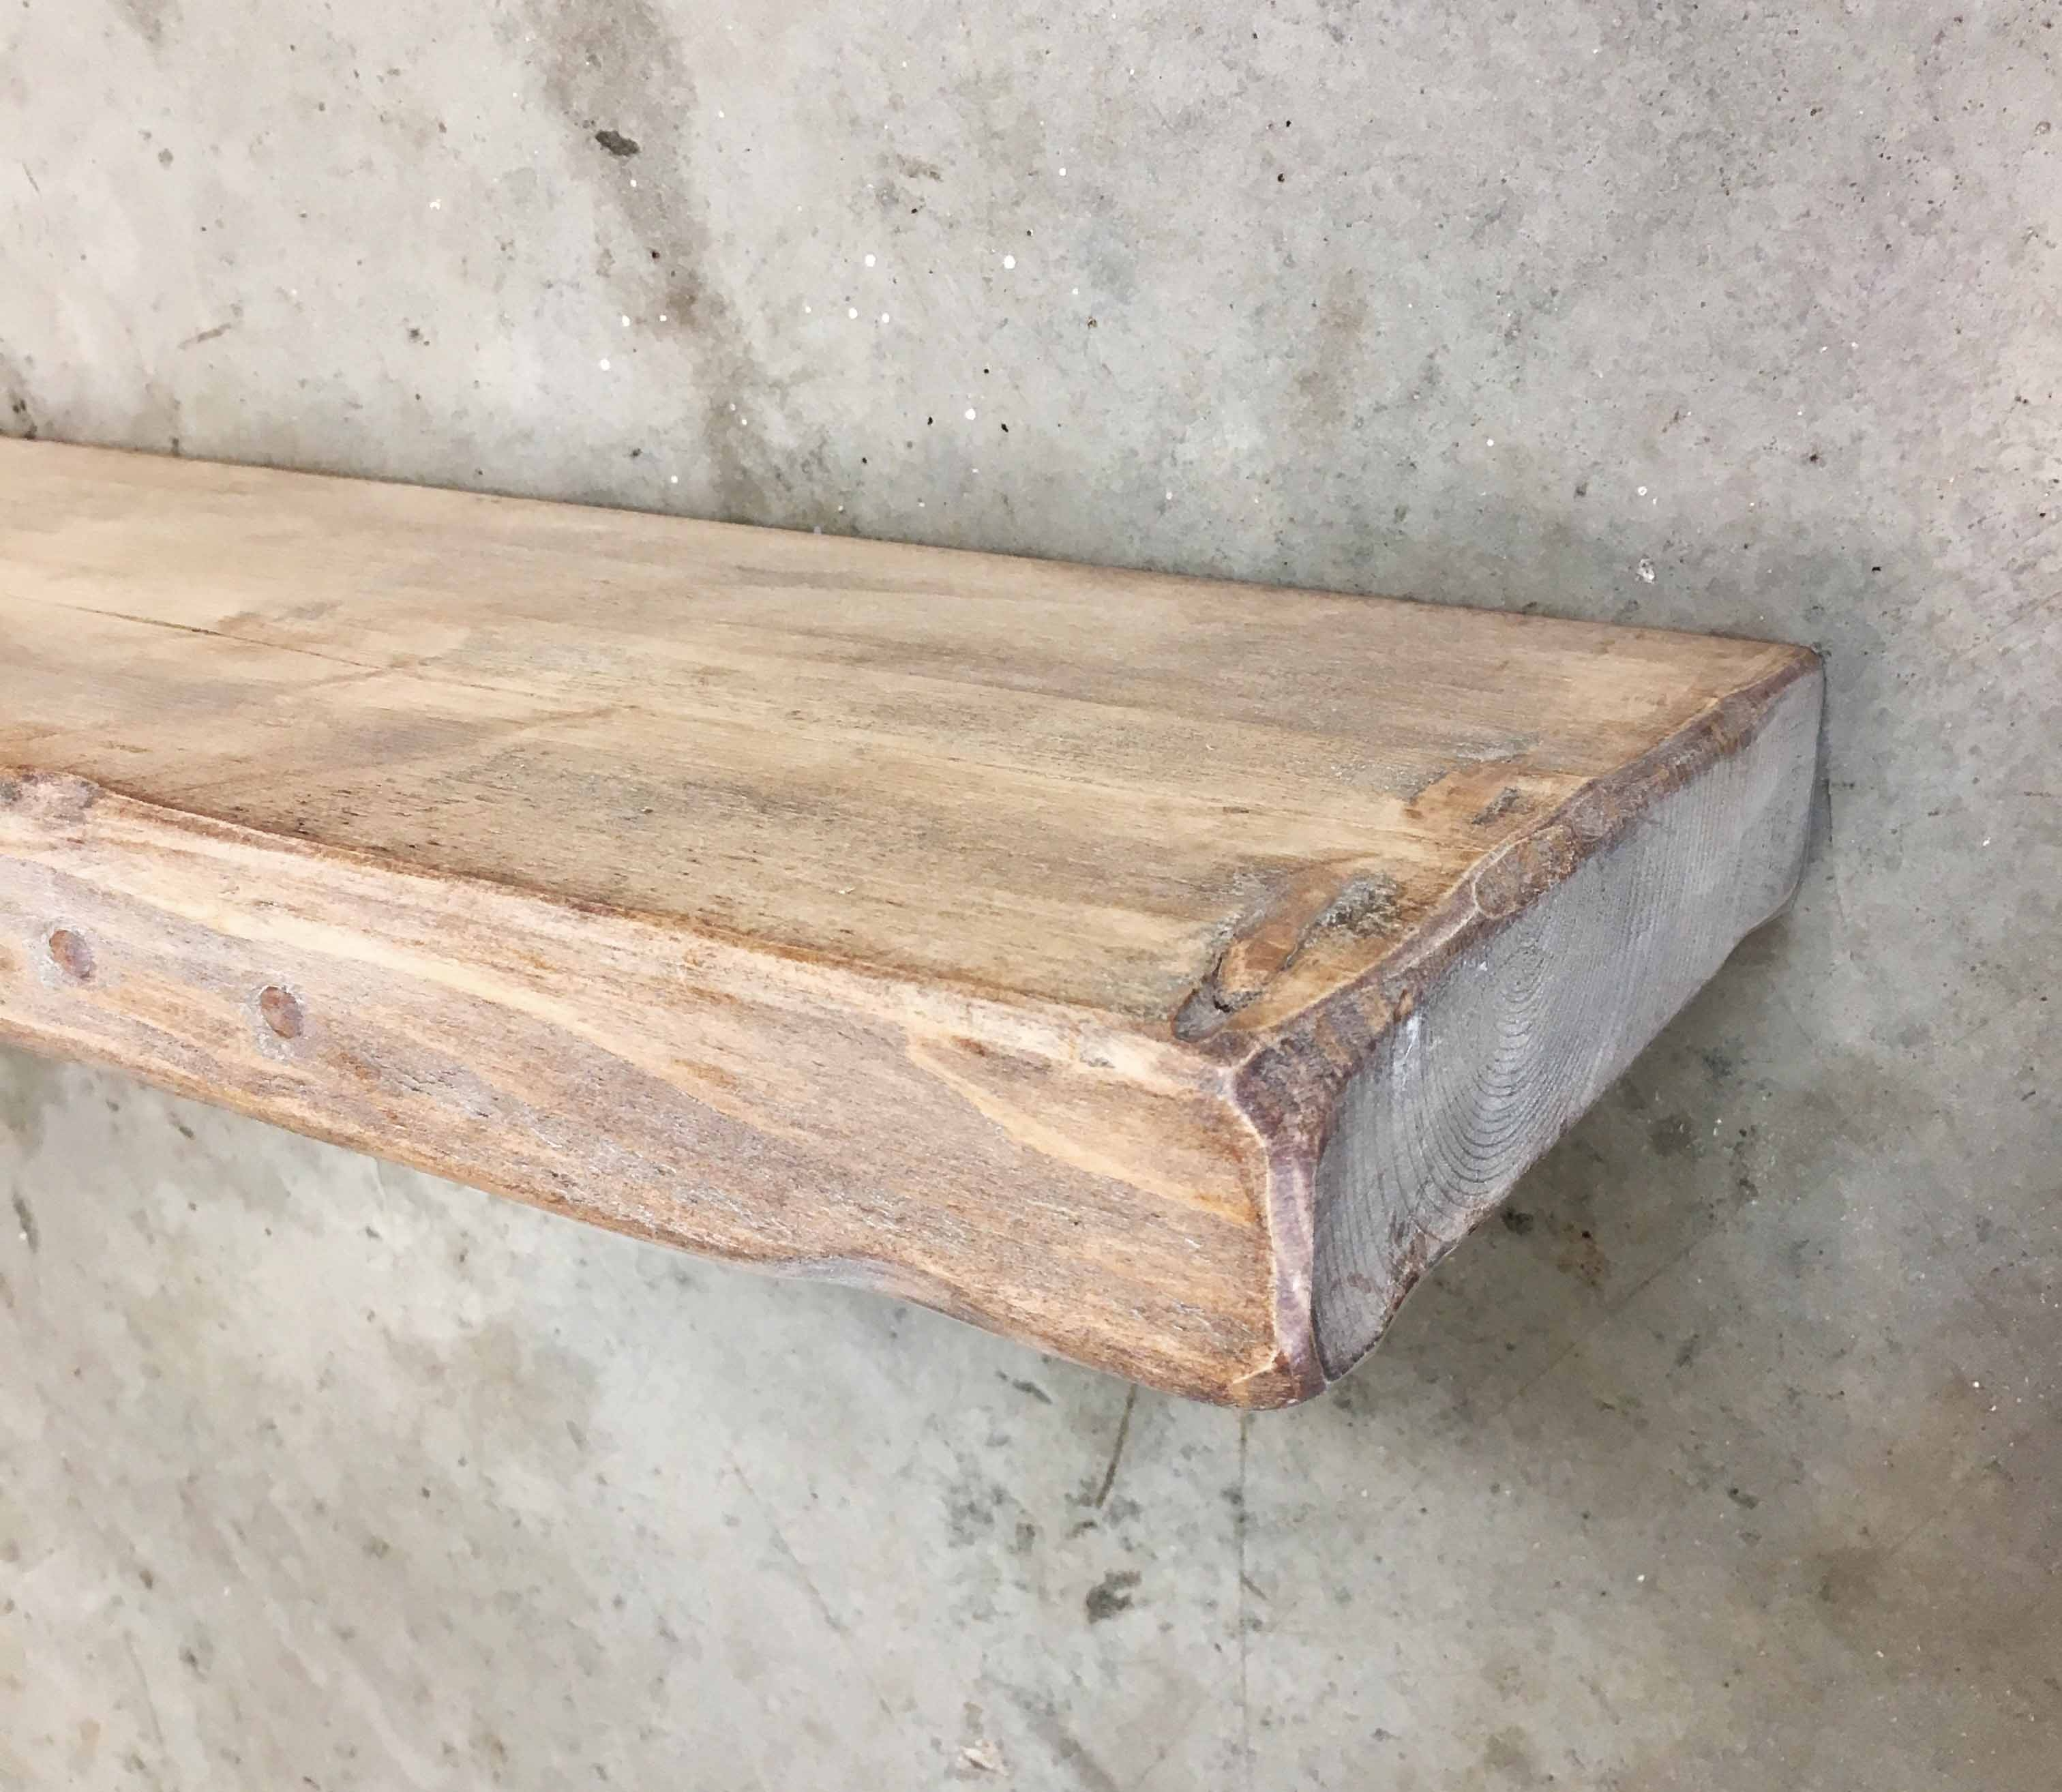 Shab Chic Rustic Chunky Floating Shelf 22cm X 5cm Ben Simpson Inside 50cm Floating Shelf (View 14 of 15)